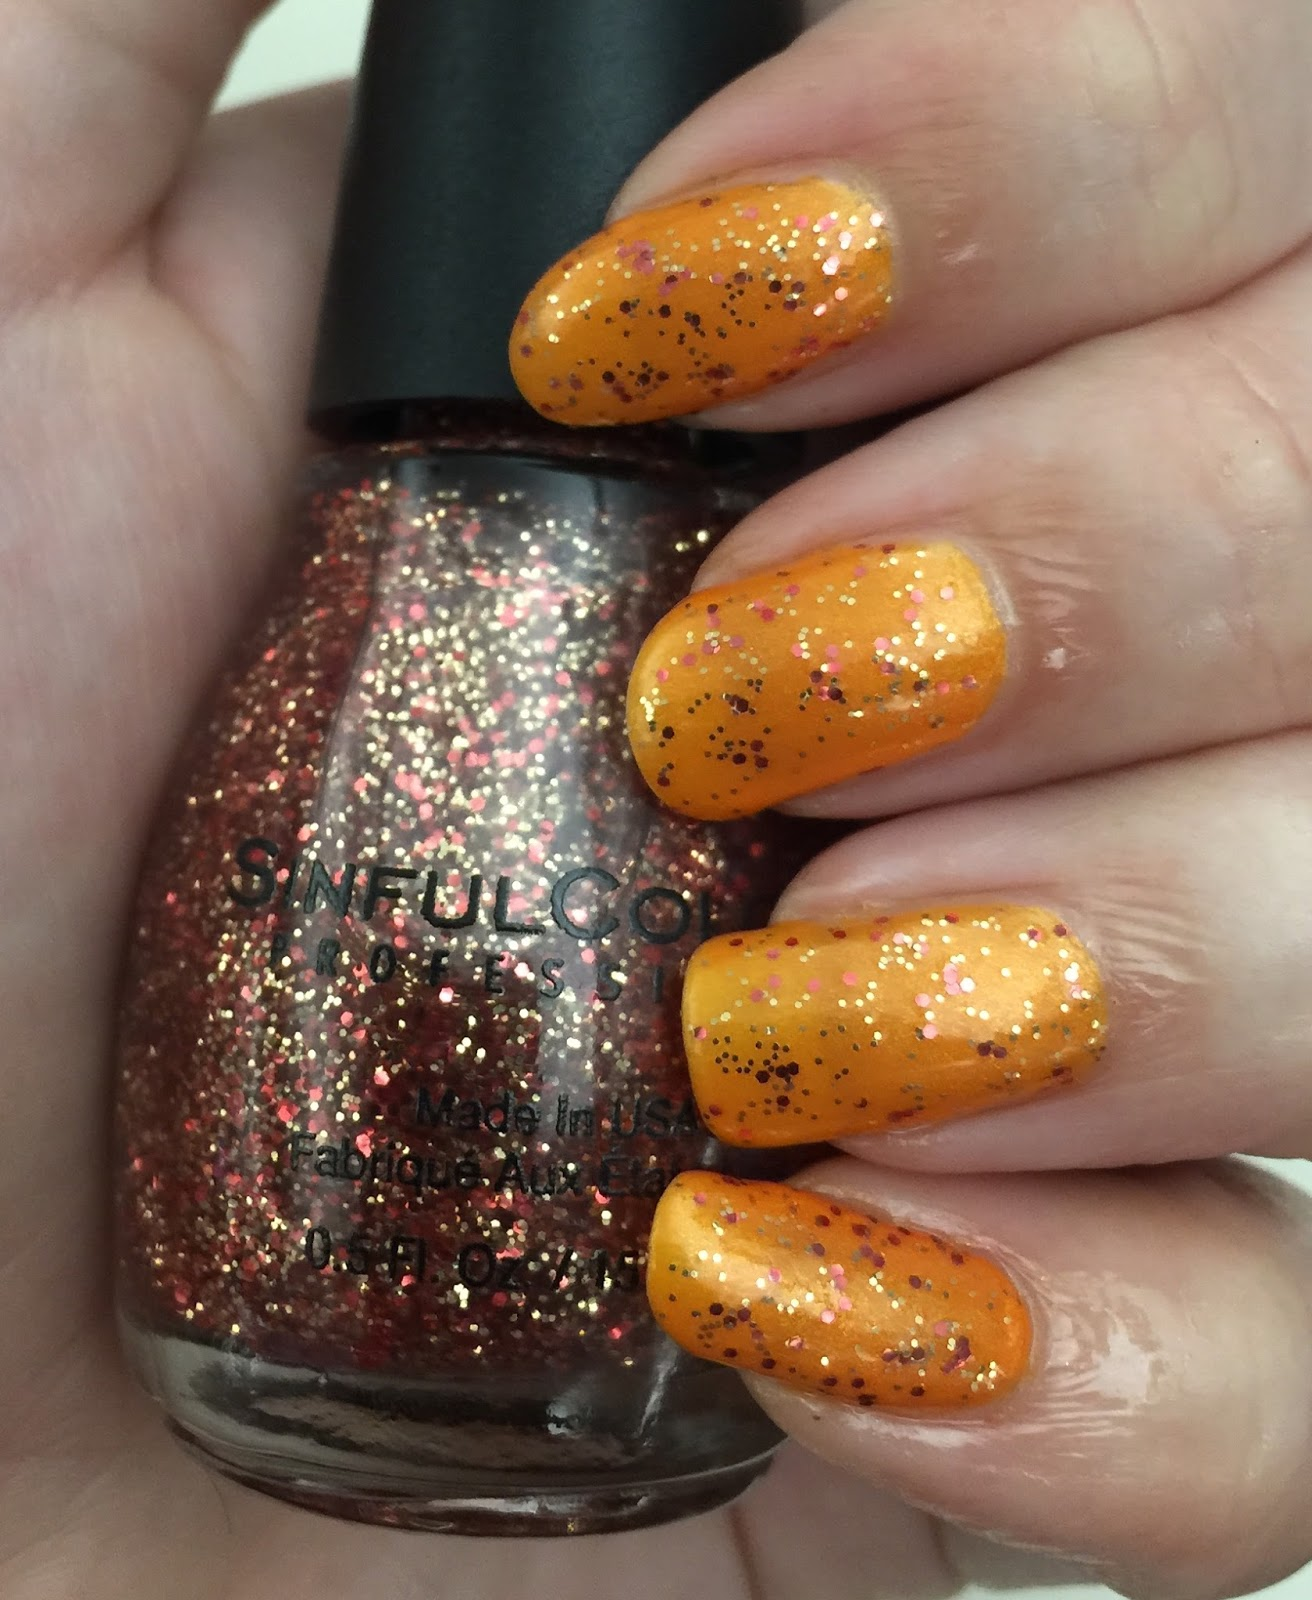 SinfulColors pumpkin spice